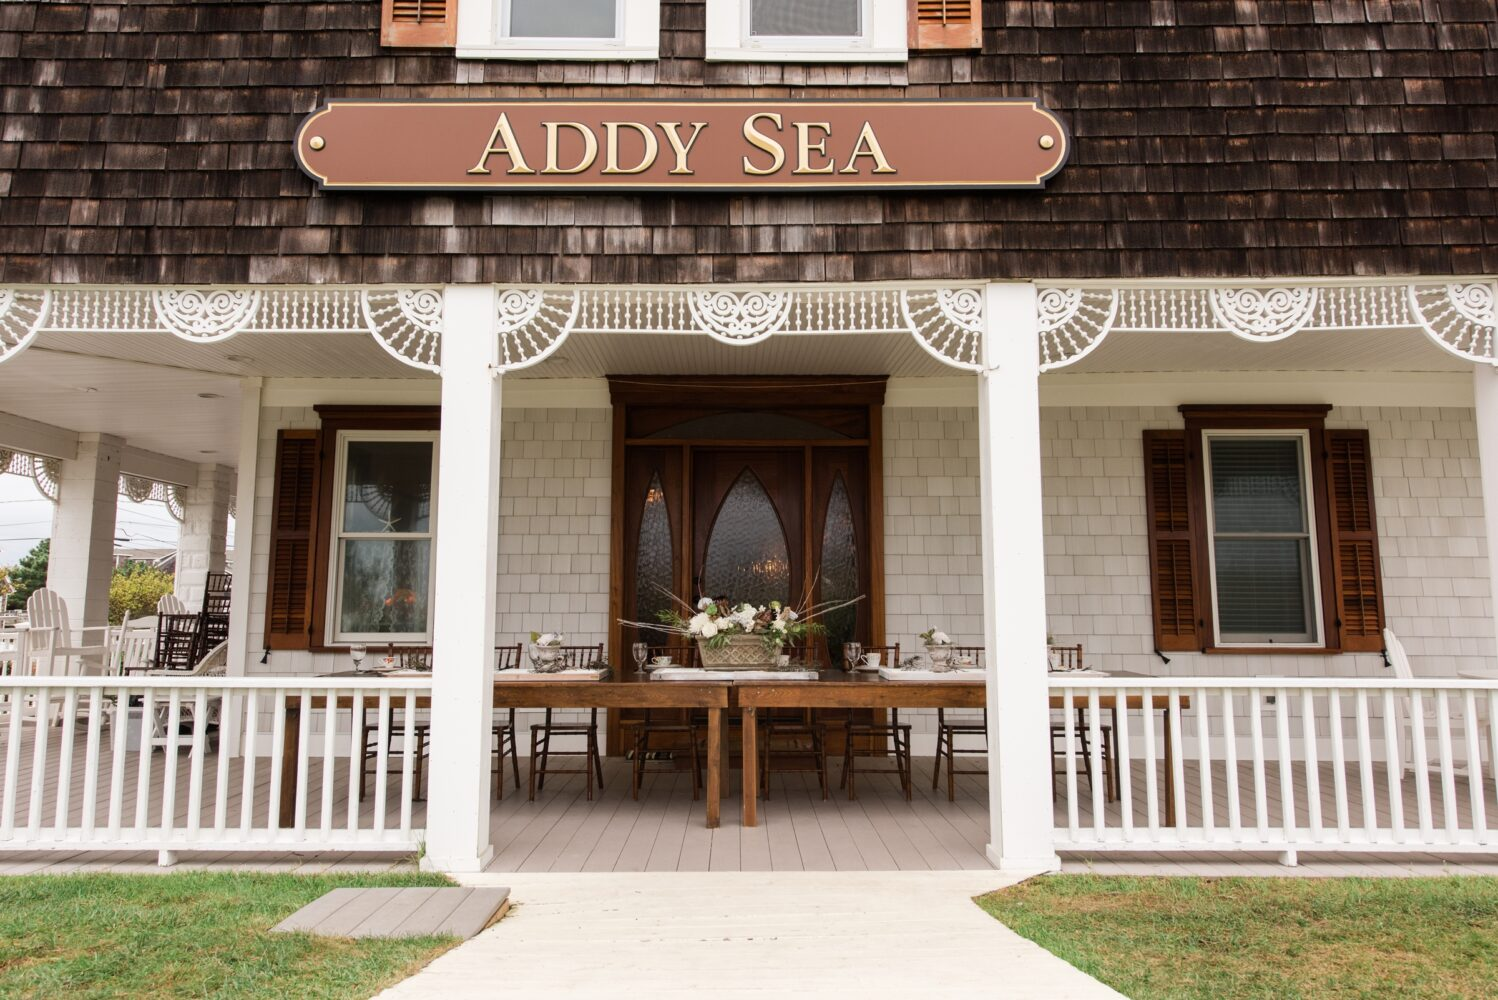 Addy Sea - Bethany Beach B&B business branding photography